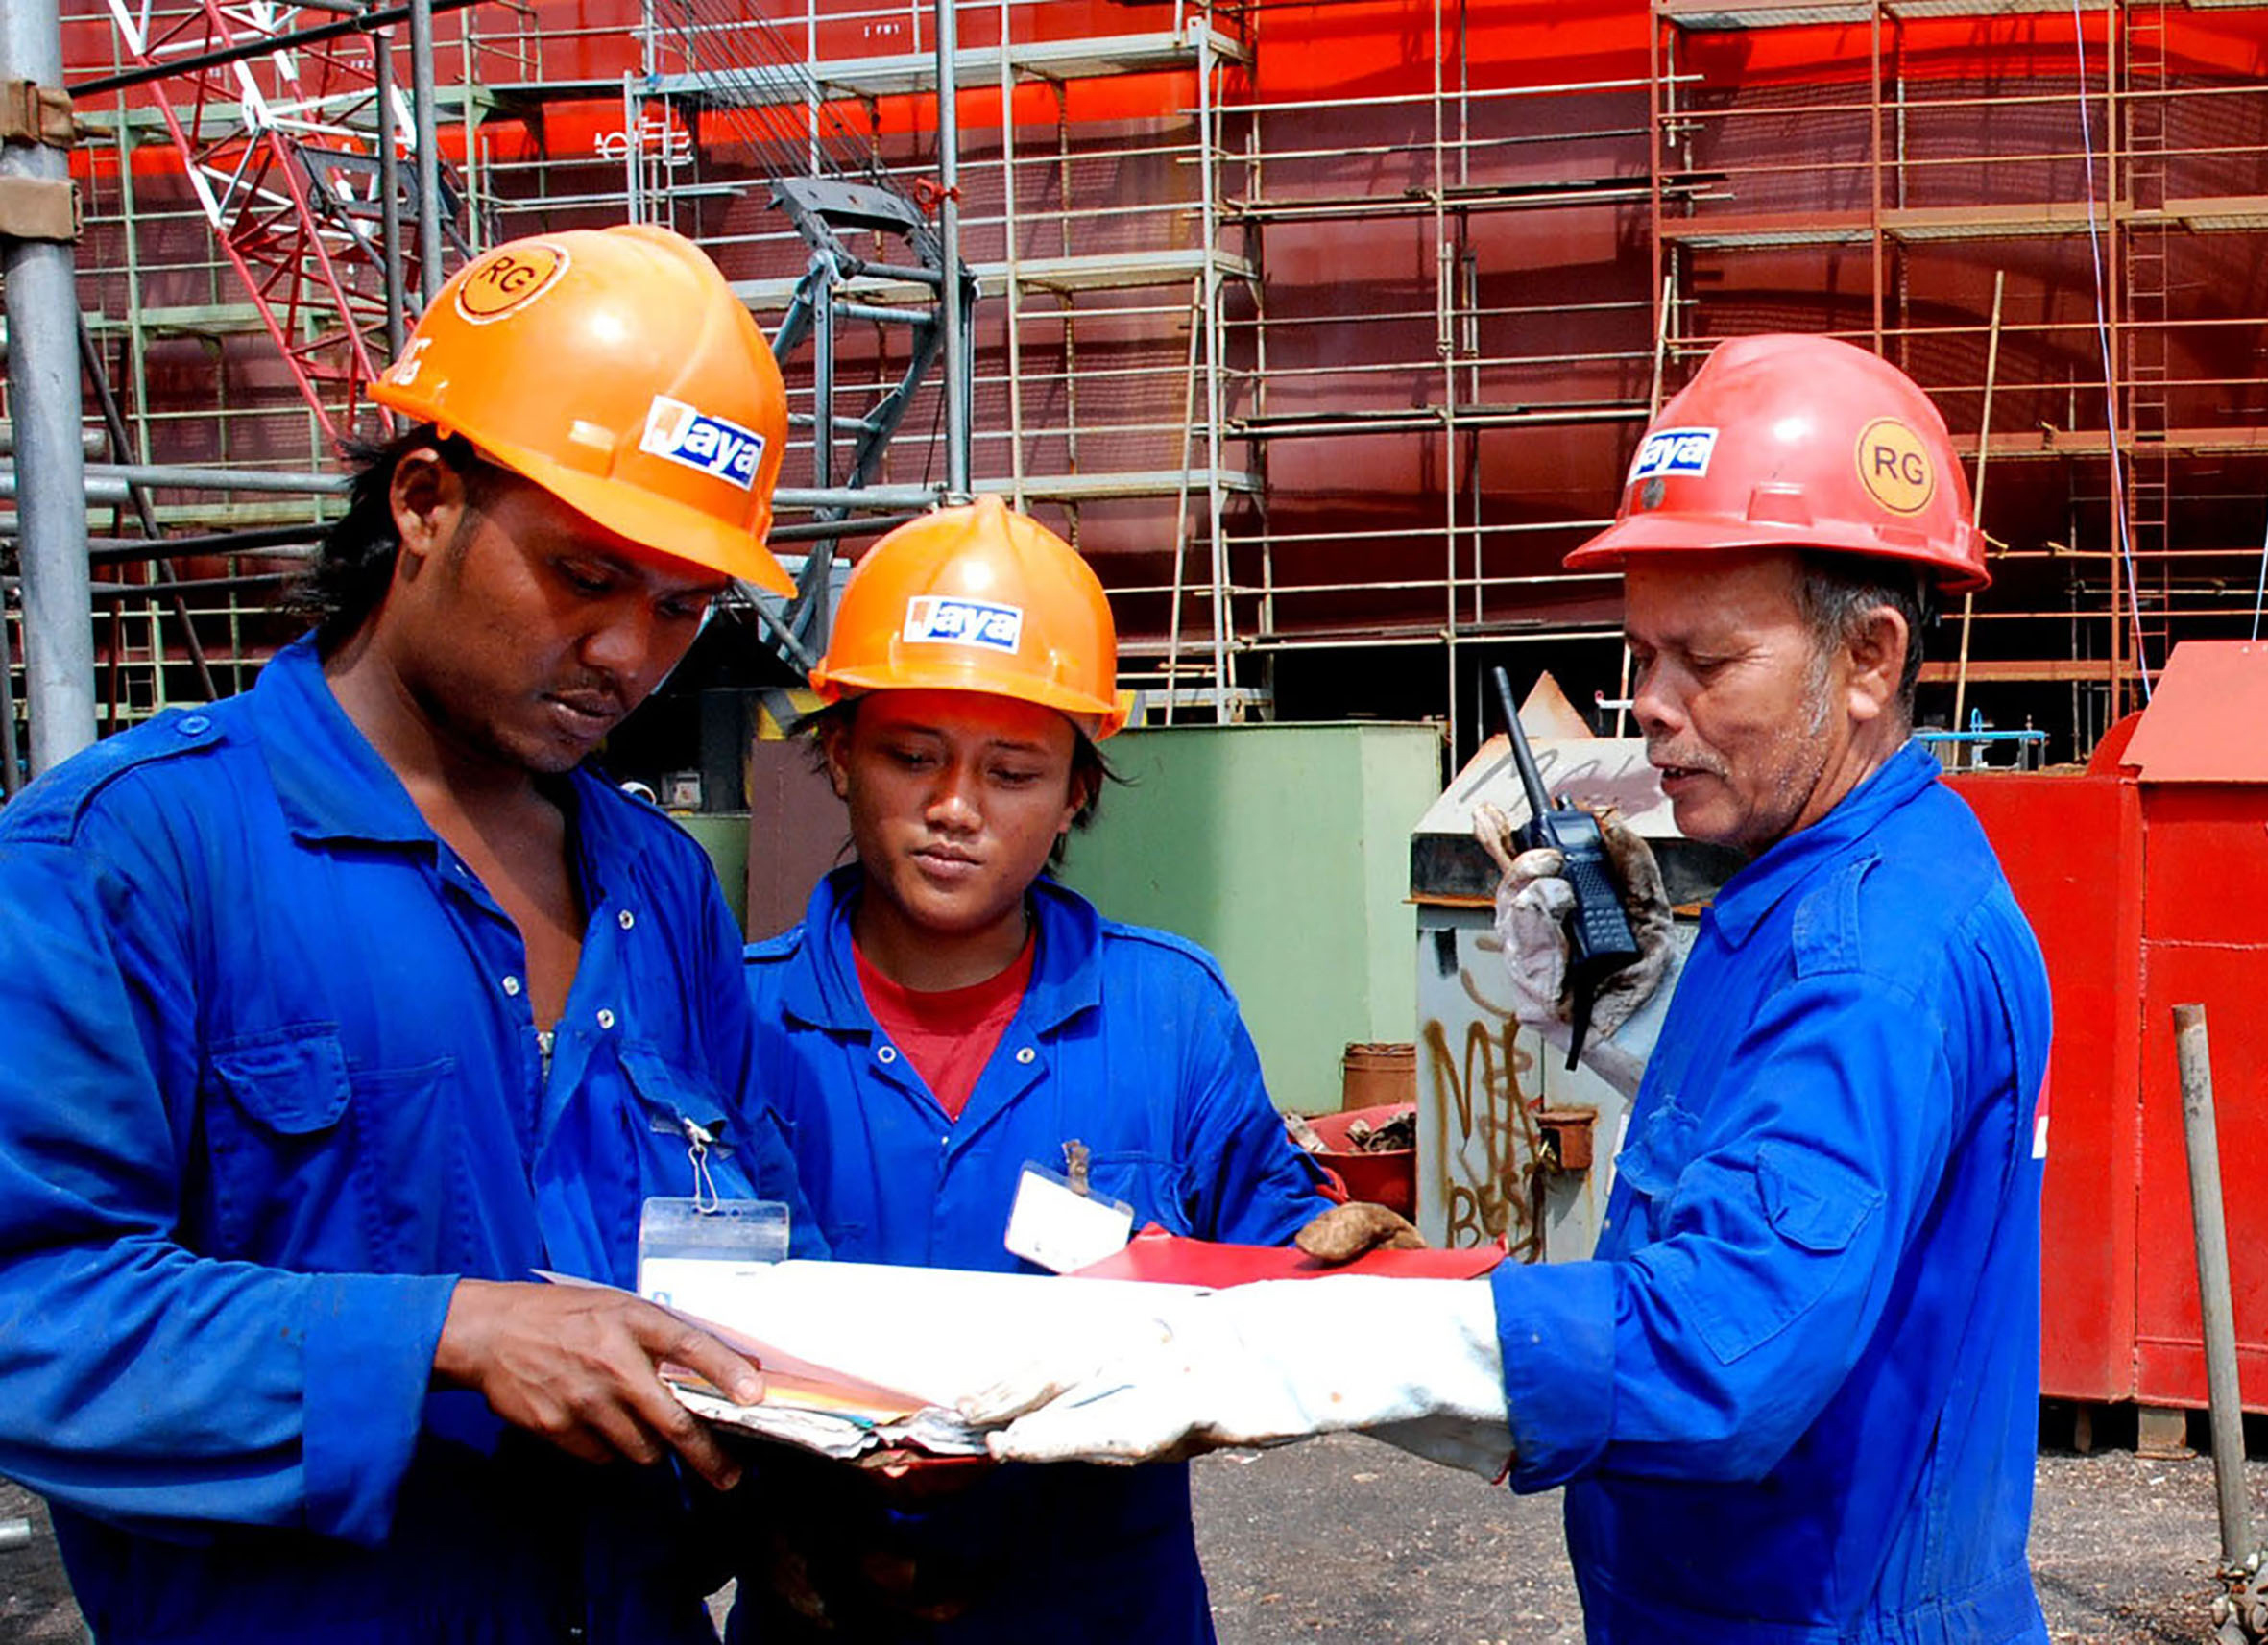 Skills dimensions of labour migration to promote decent employment for all